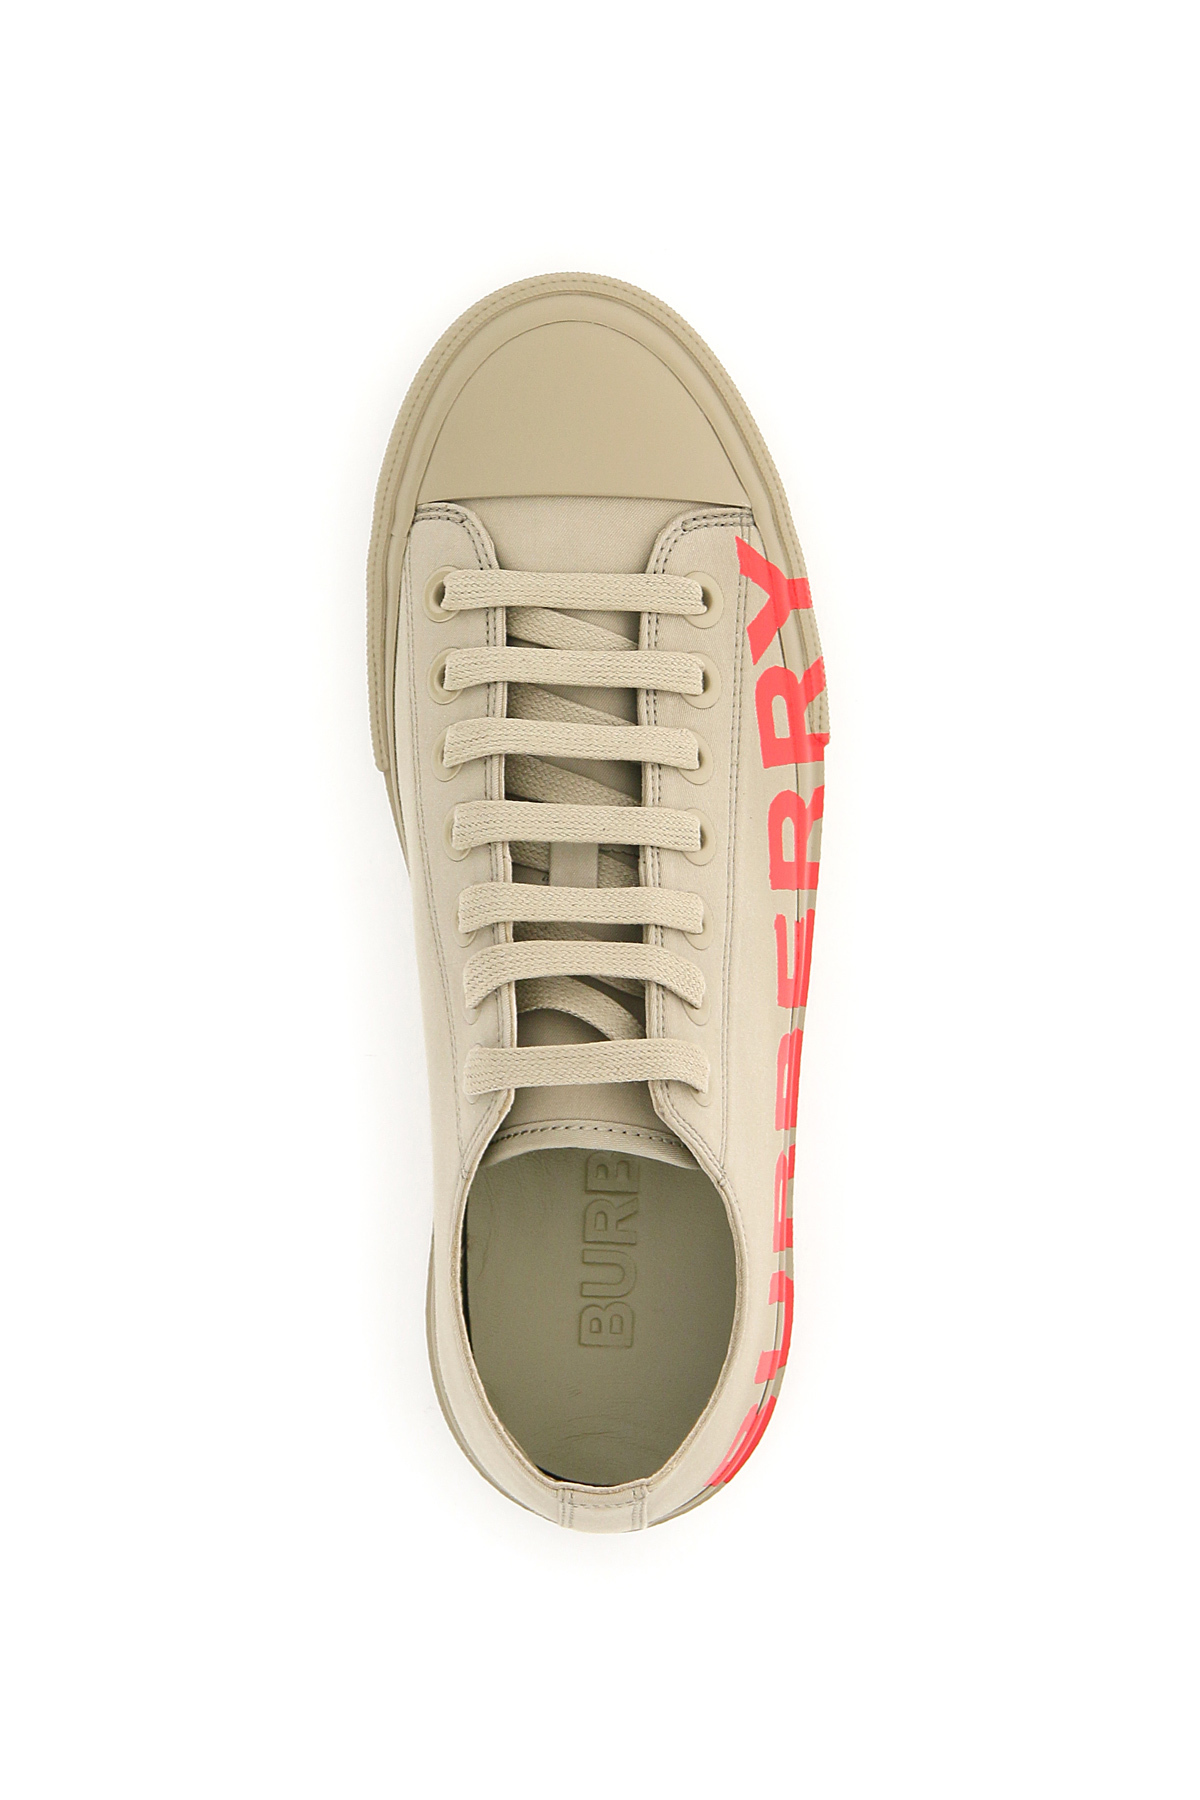 BURBERRY Shoes 0